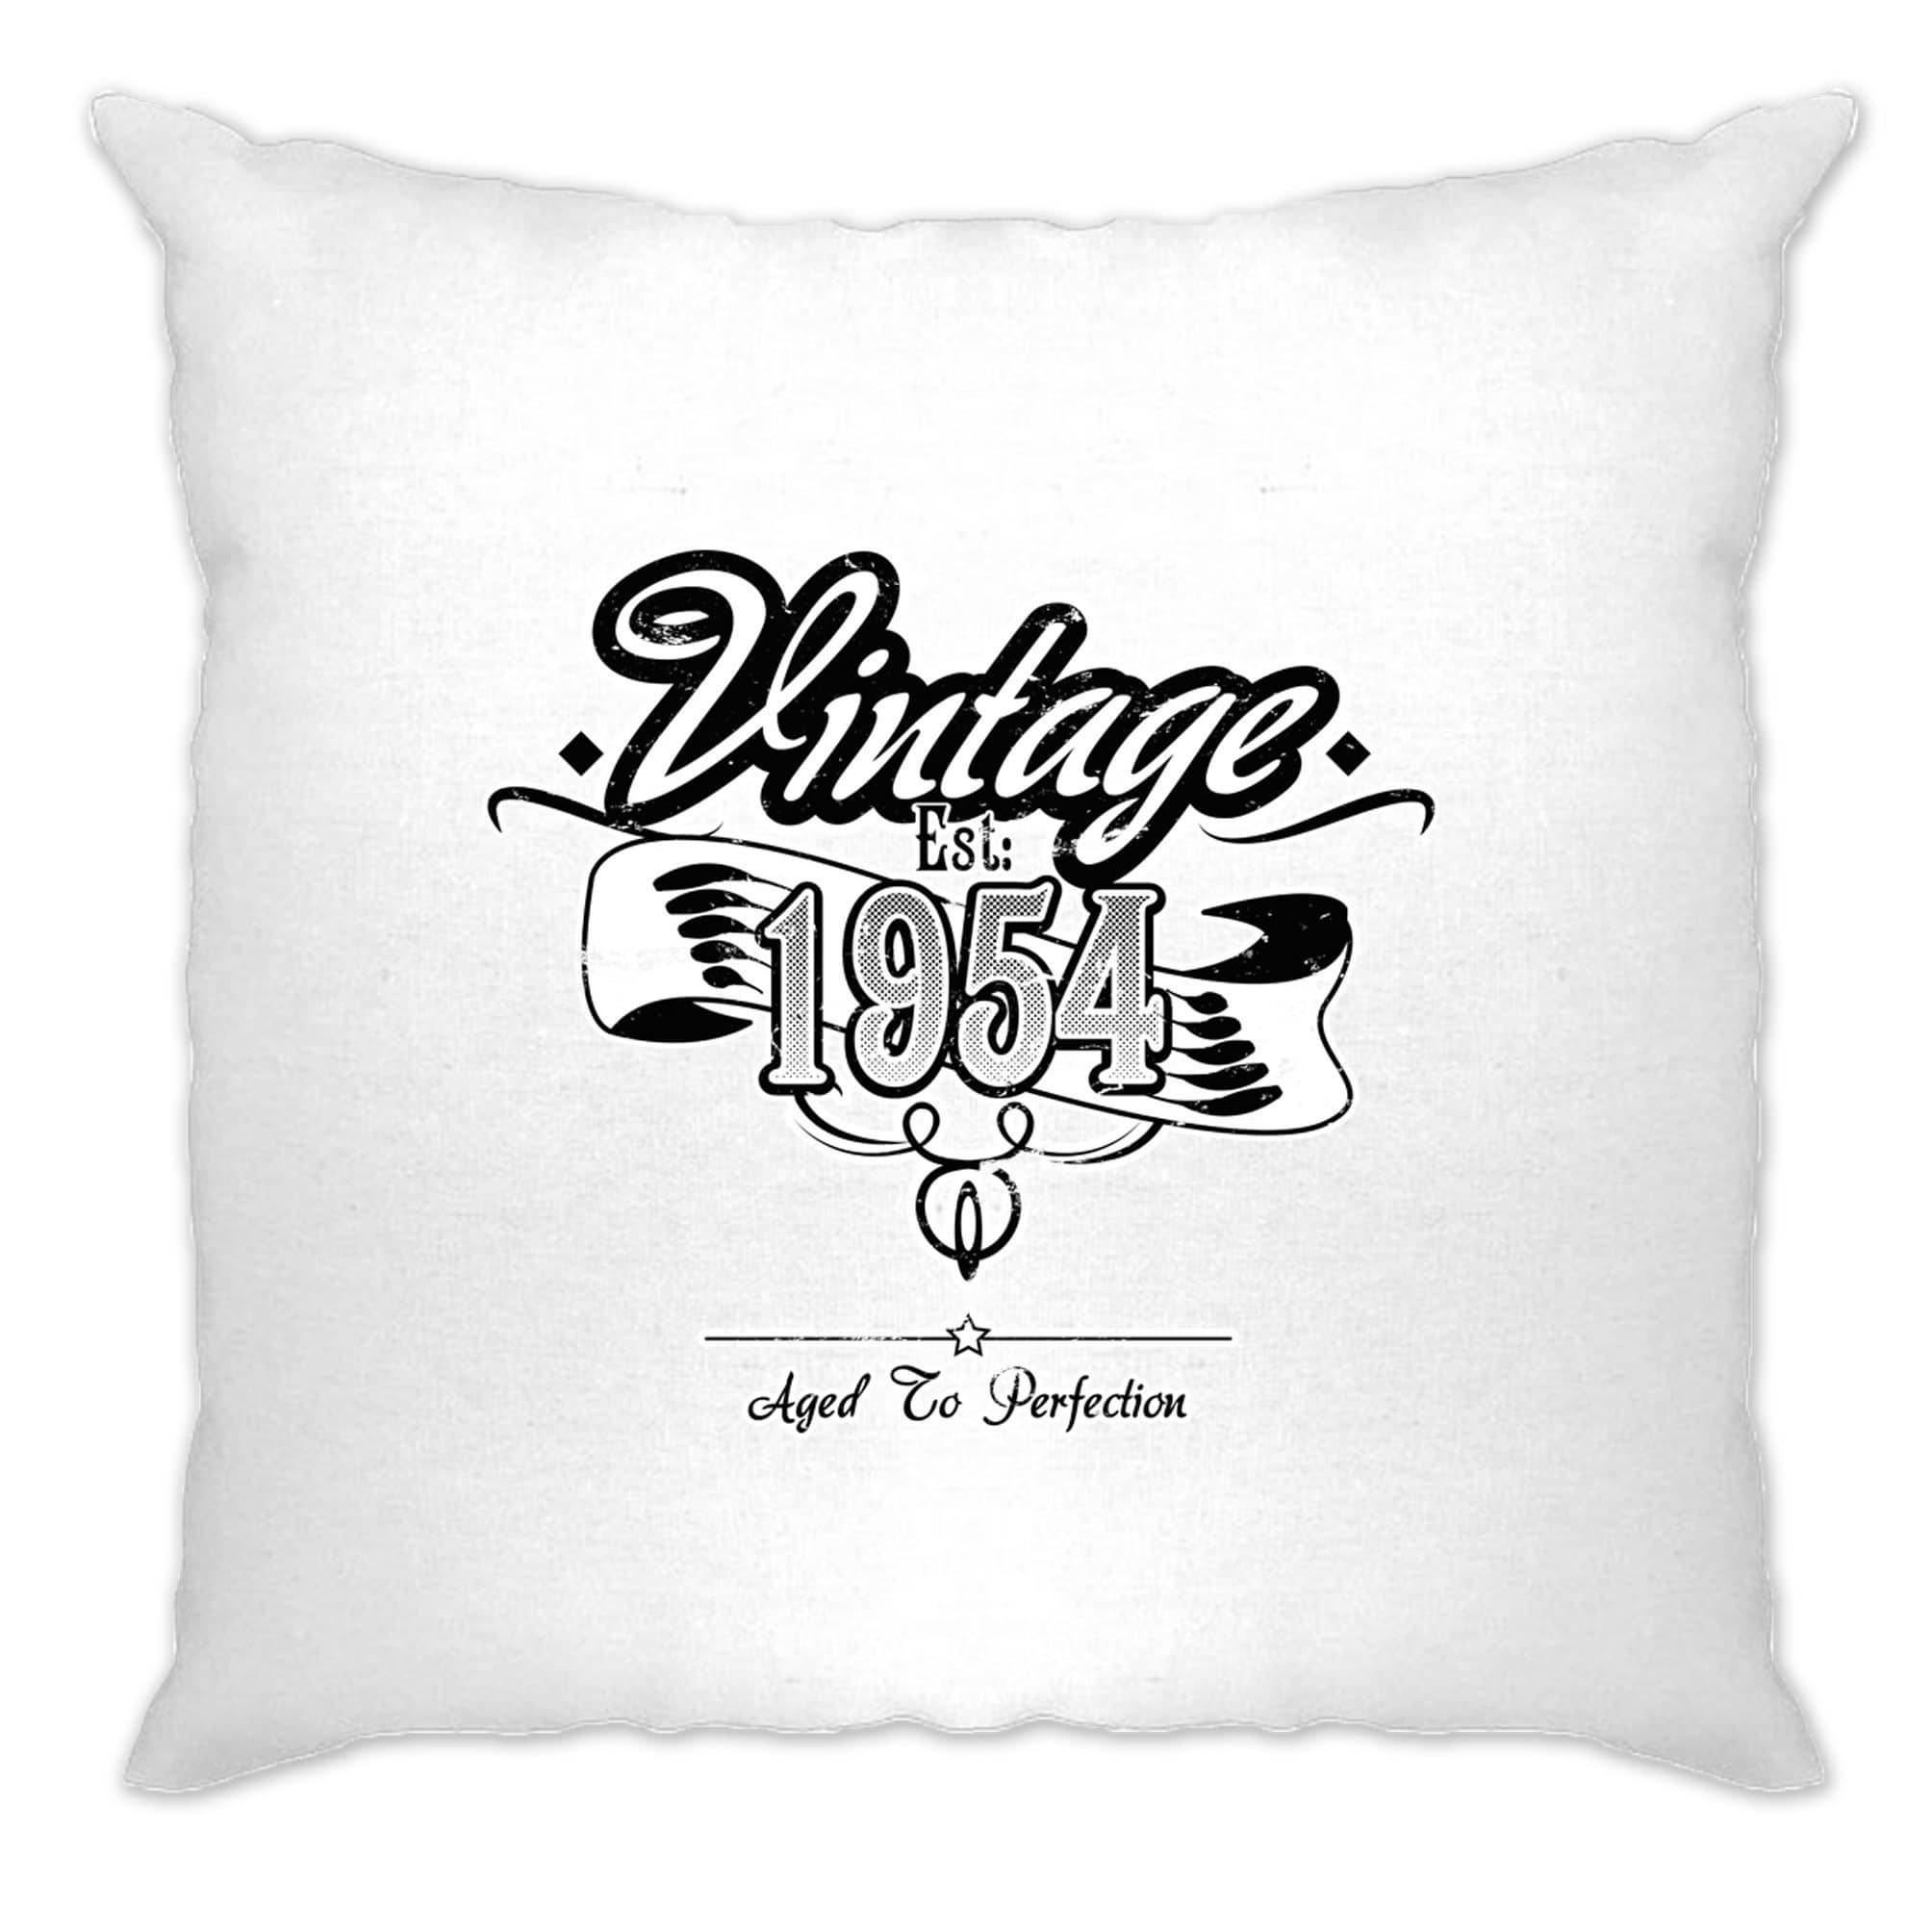 Birthday Cushion Cover Vintage Est 1954 Aged To Perfection